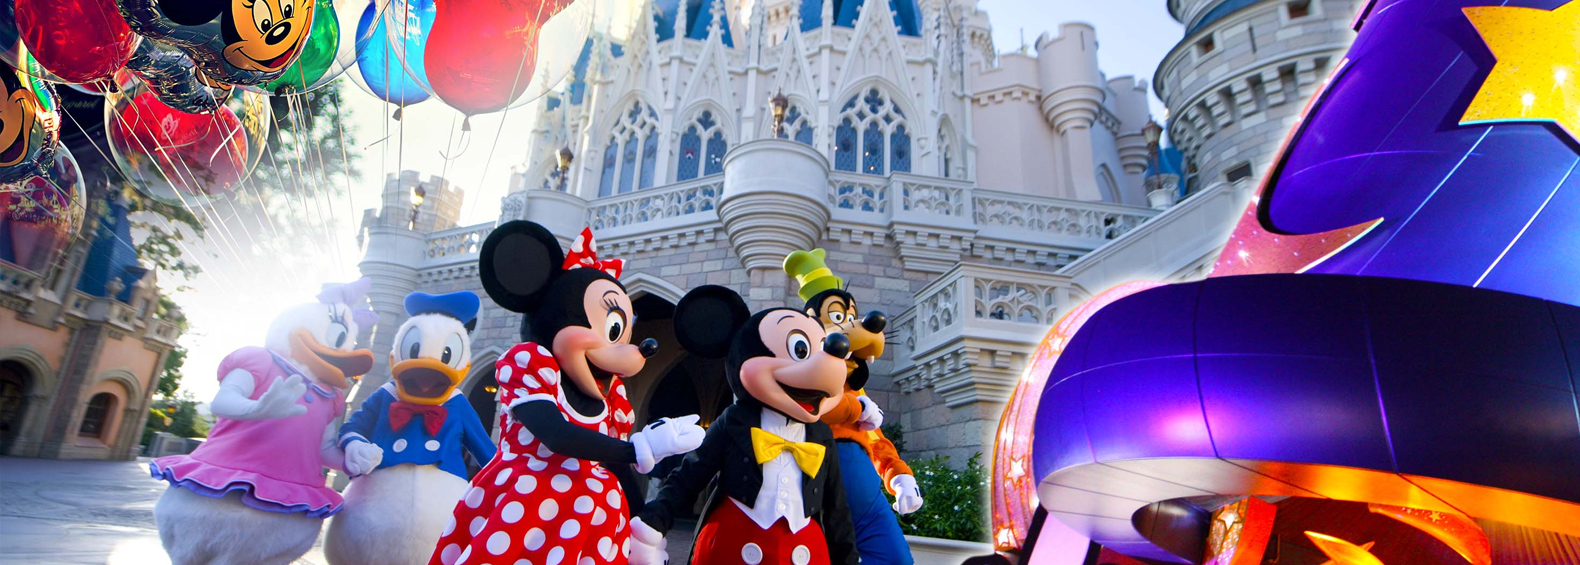 Orlando Vacation Rentals - Come Visit the Magic Kingdom